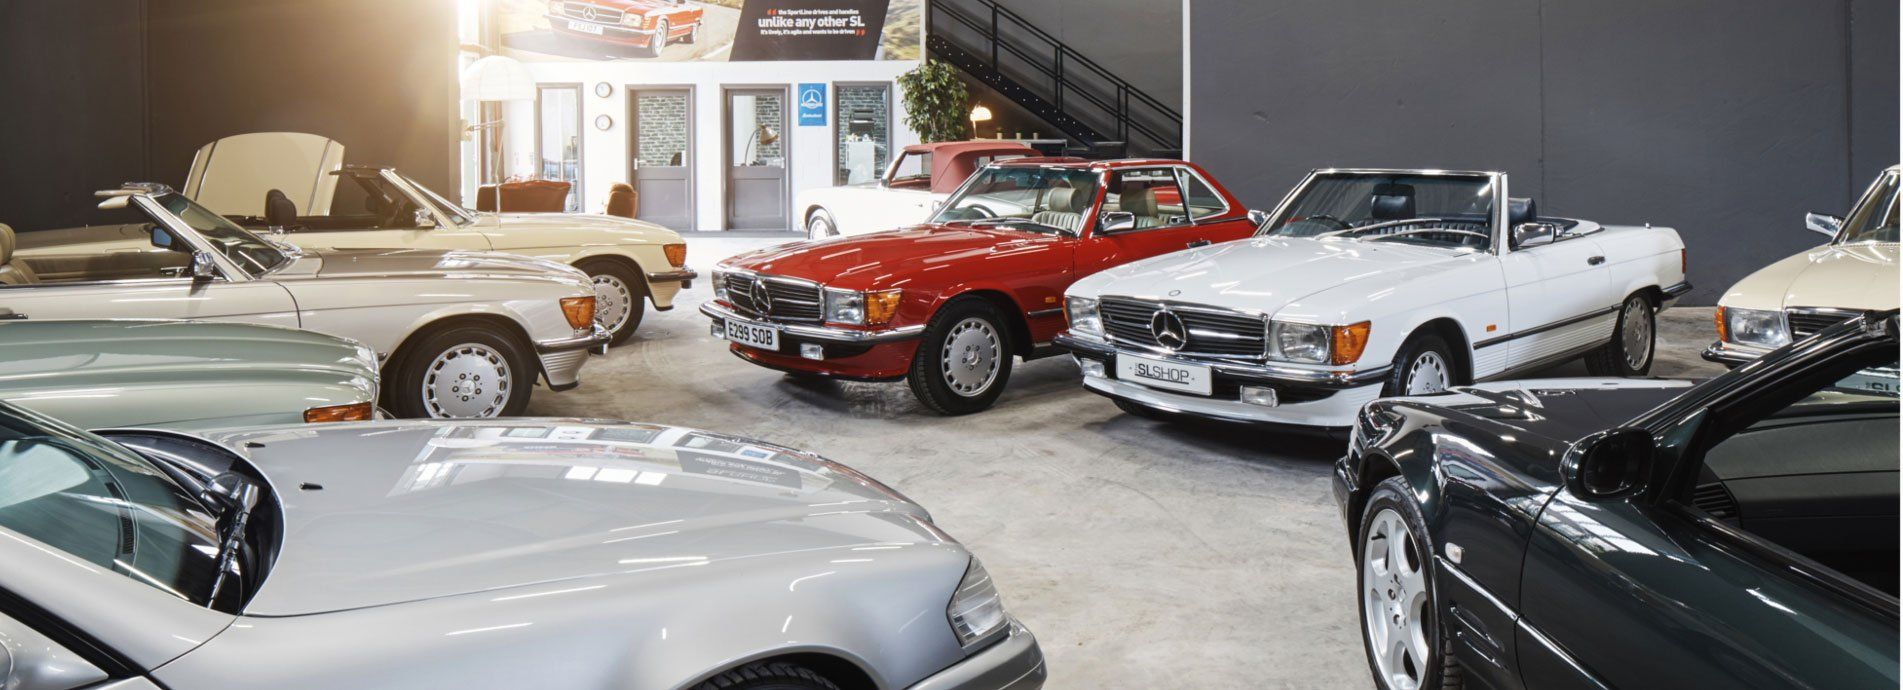 r107 500sl owners manual site www.benzworld.org